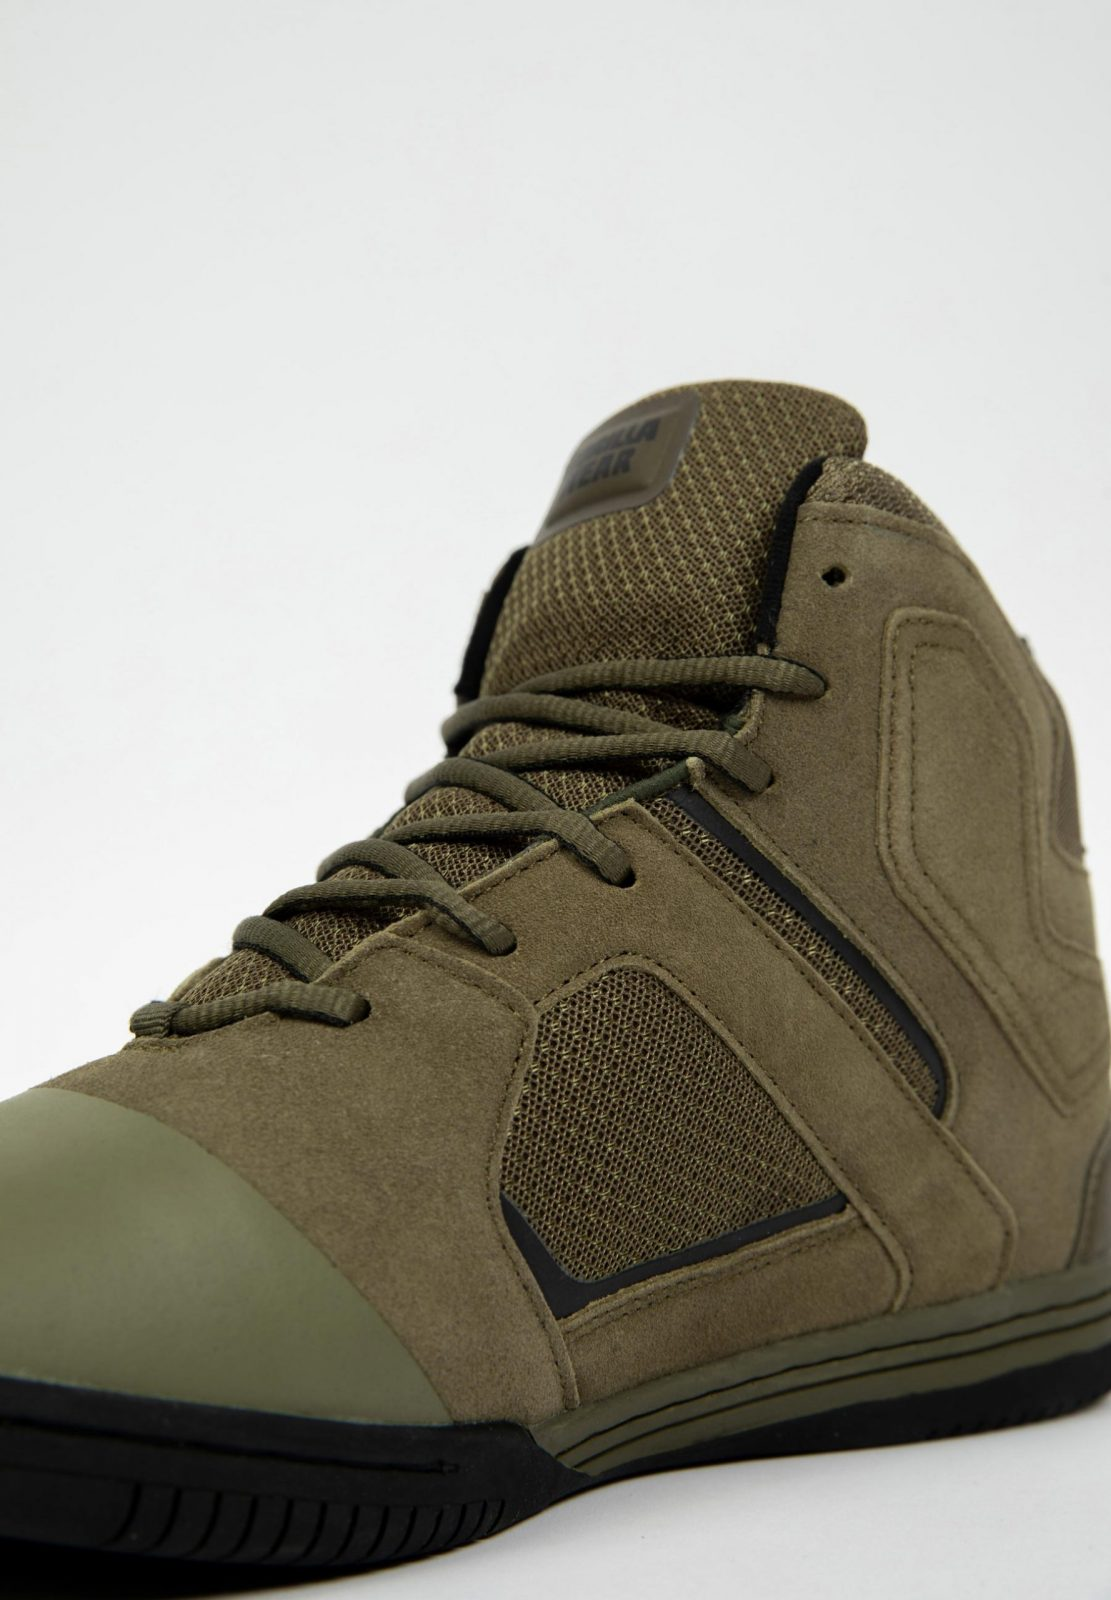 90009409-troy-high-tops-army-green-09